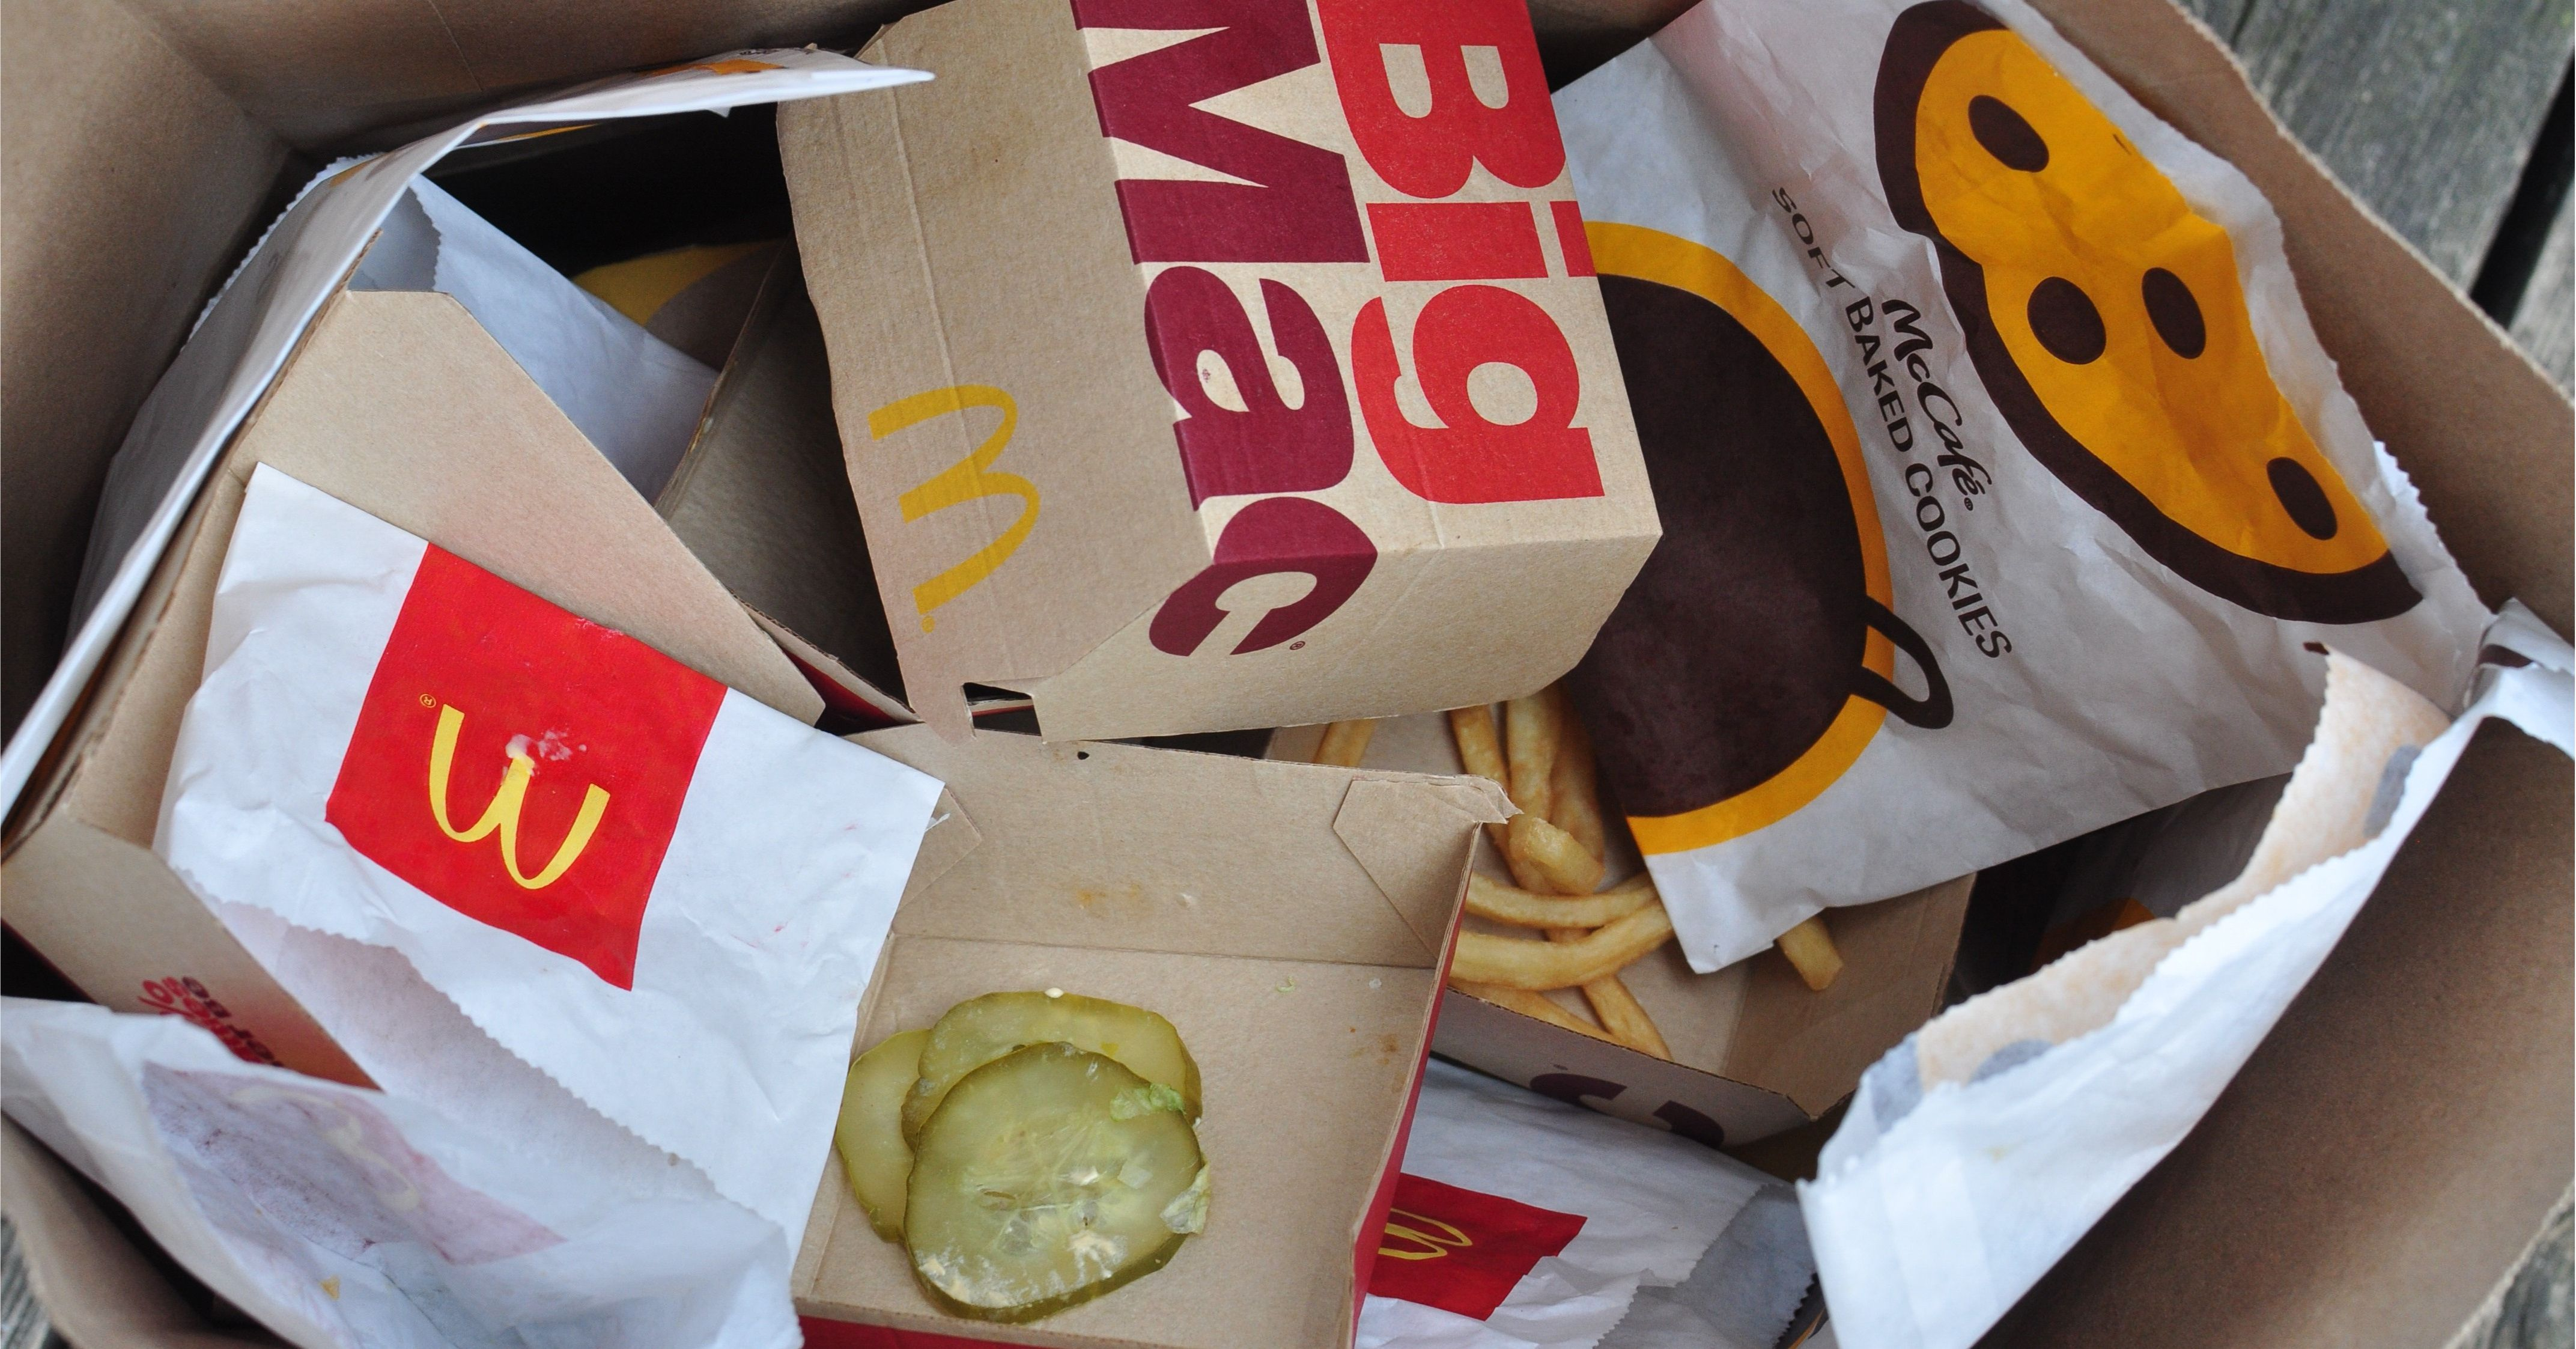 Trash of McDonalds items that tested positive for PFAS